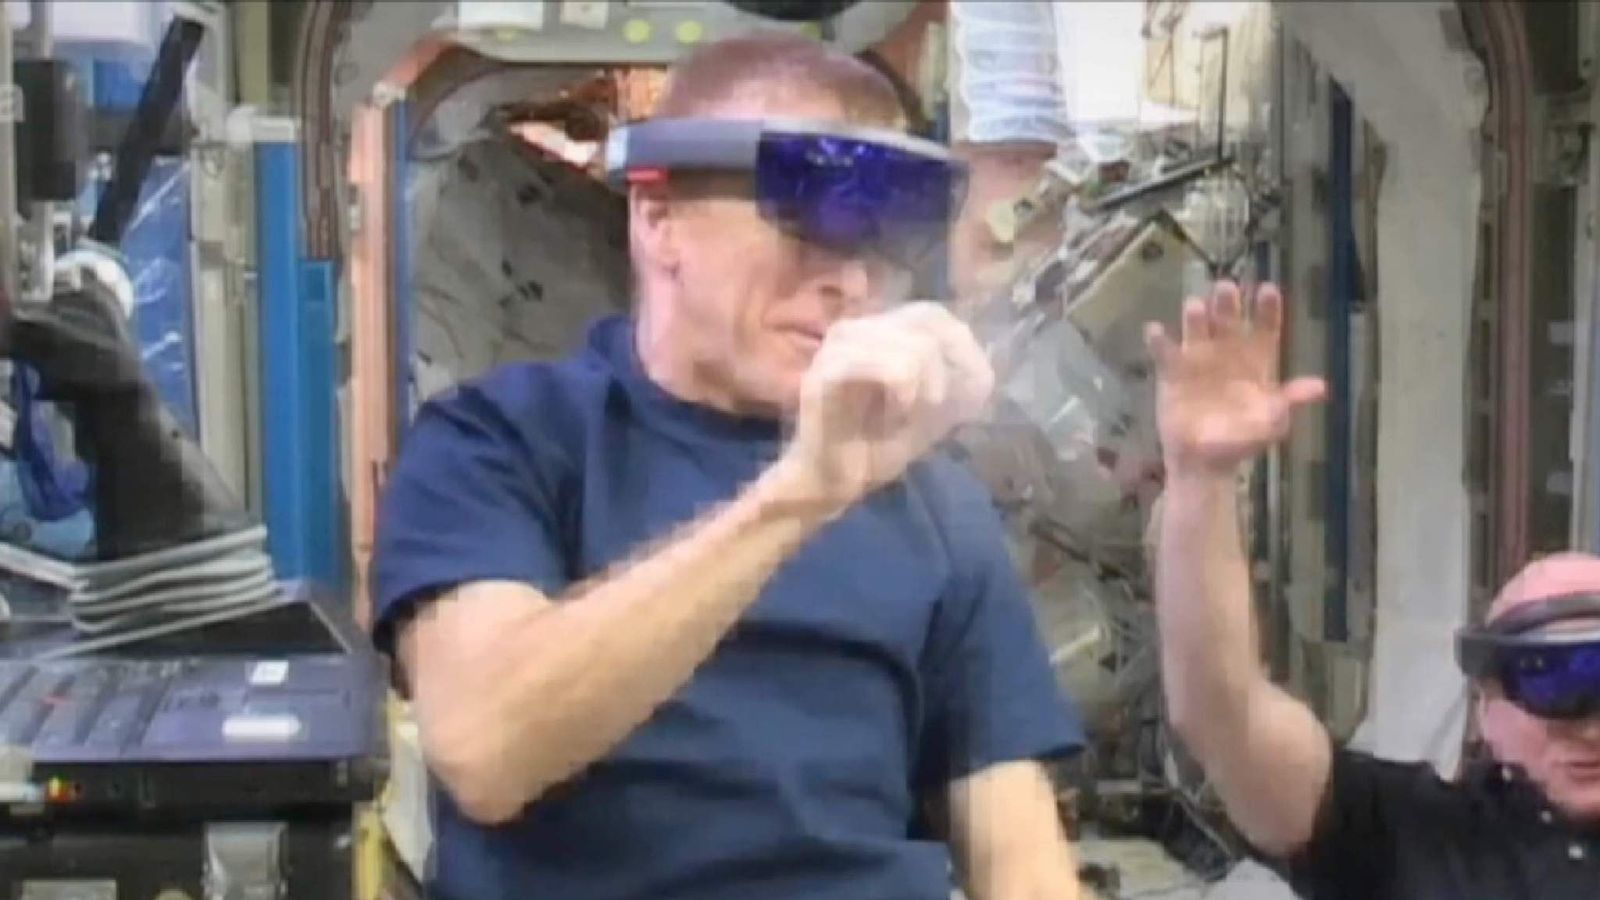 Tim Peake playing space invaders on the international space station